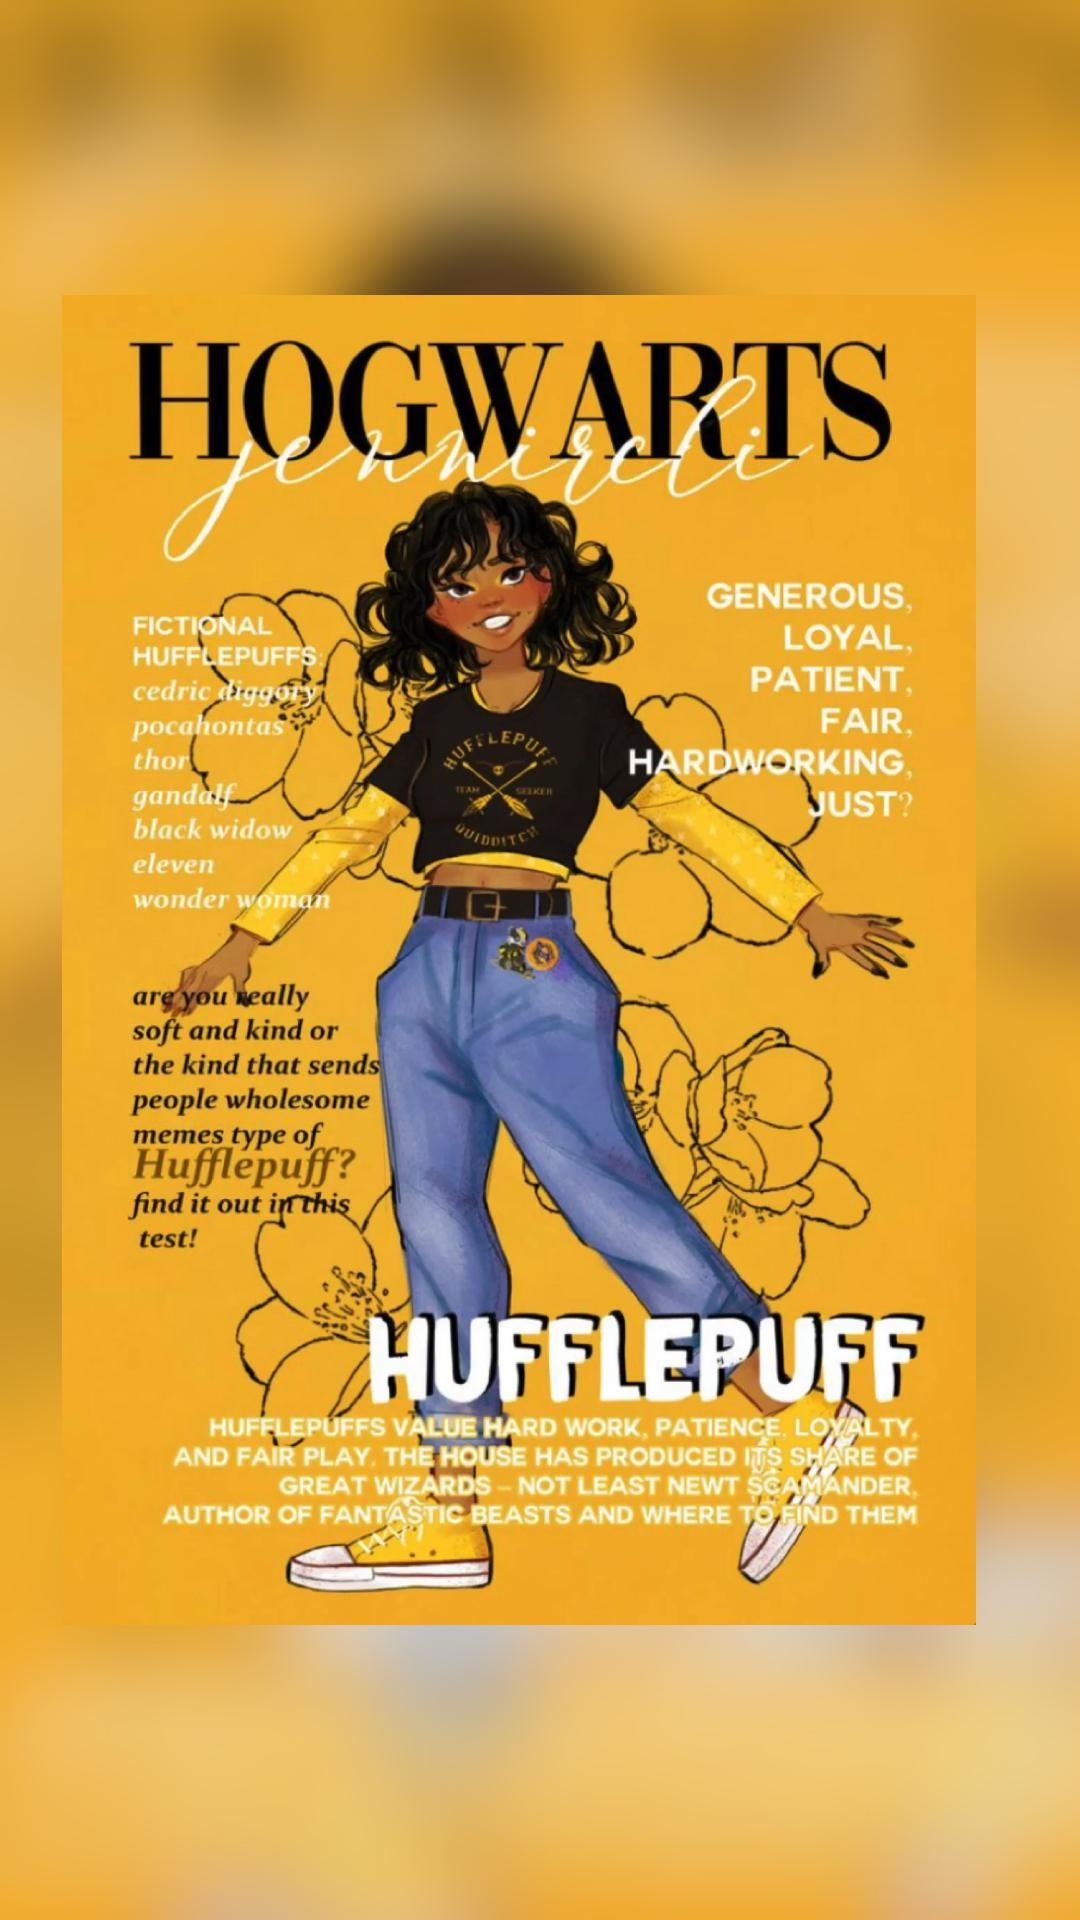 All my Hufflepuff you know how you are 💛🖤💛🖤💛🖤💛🌕🌑🌕🌑🌕🌑🌕